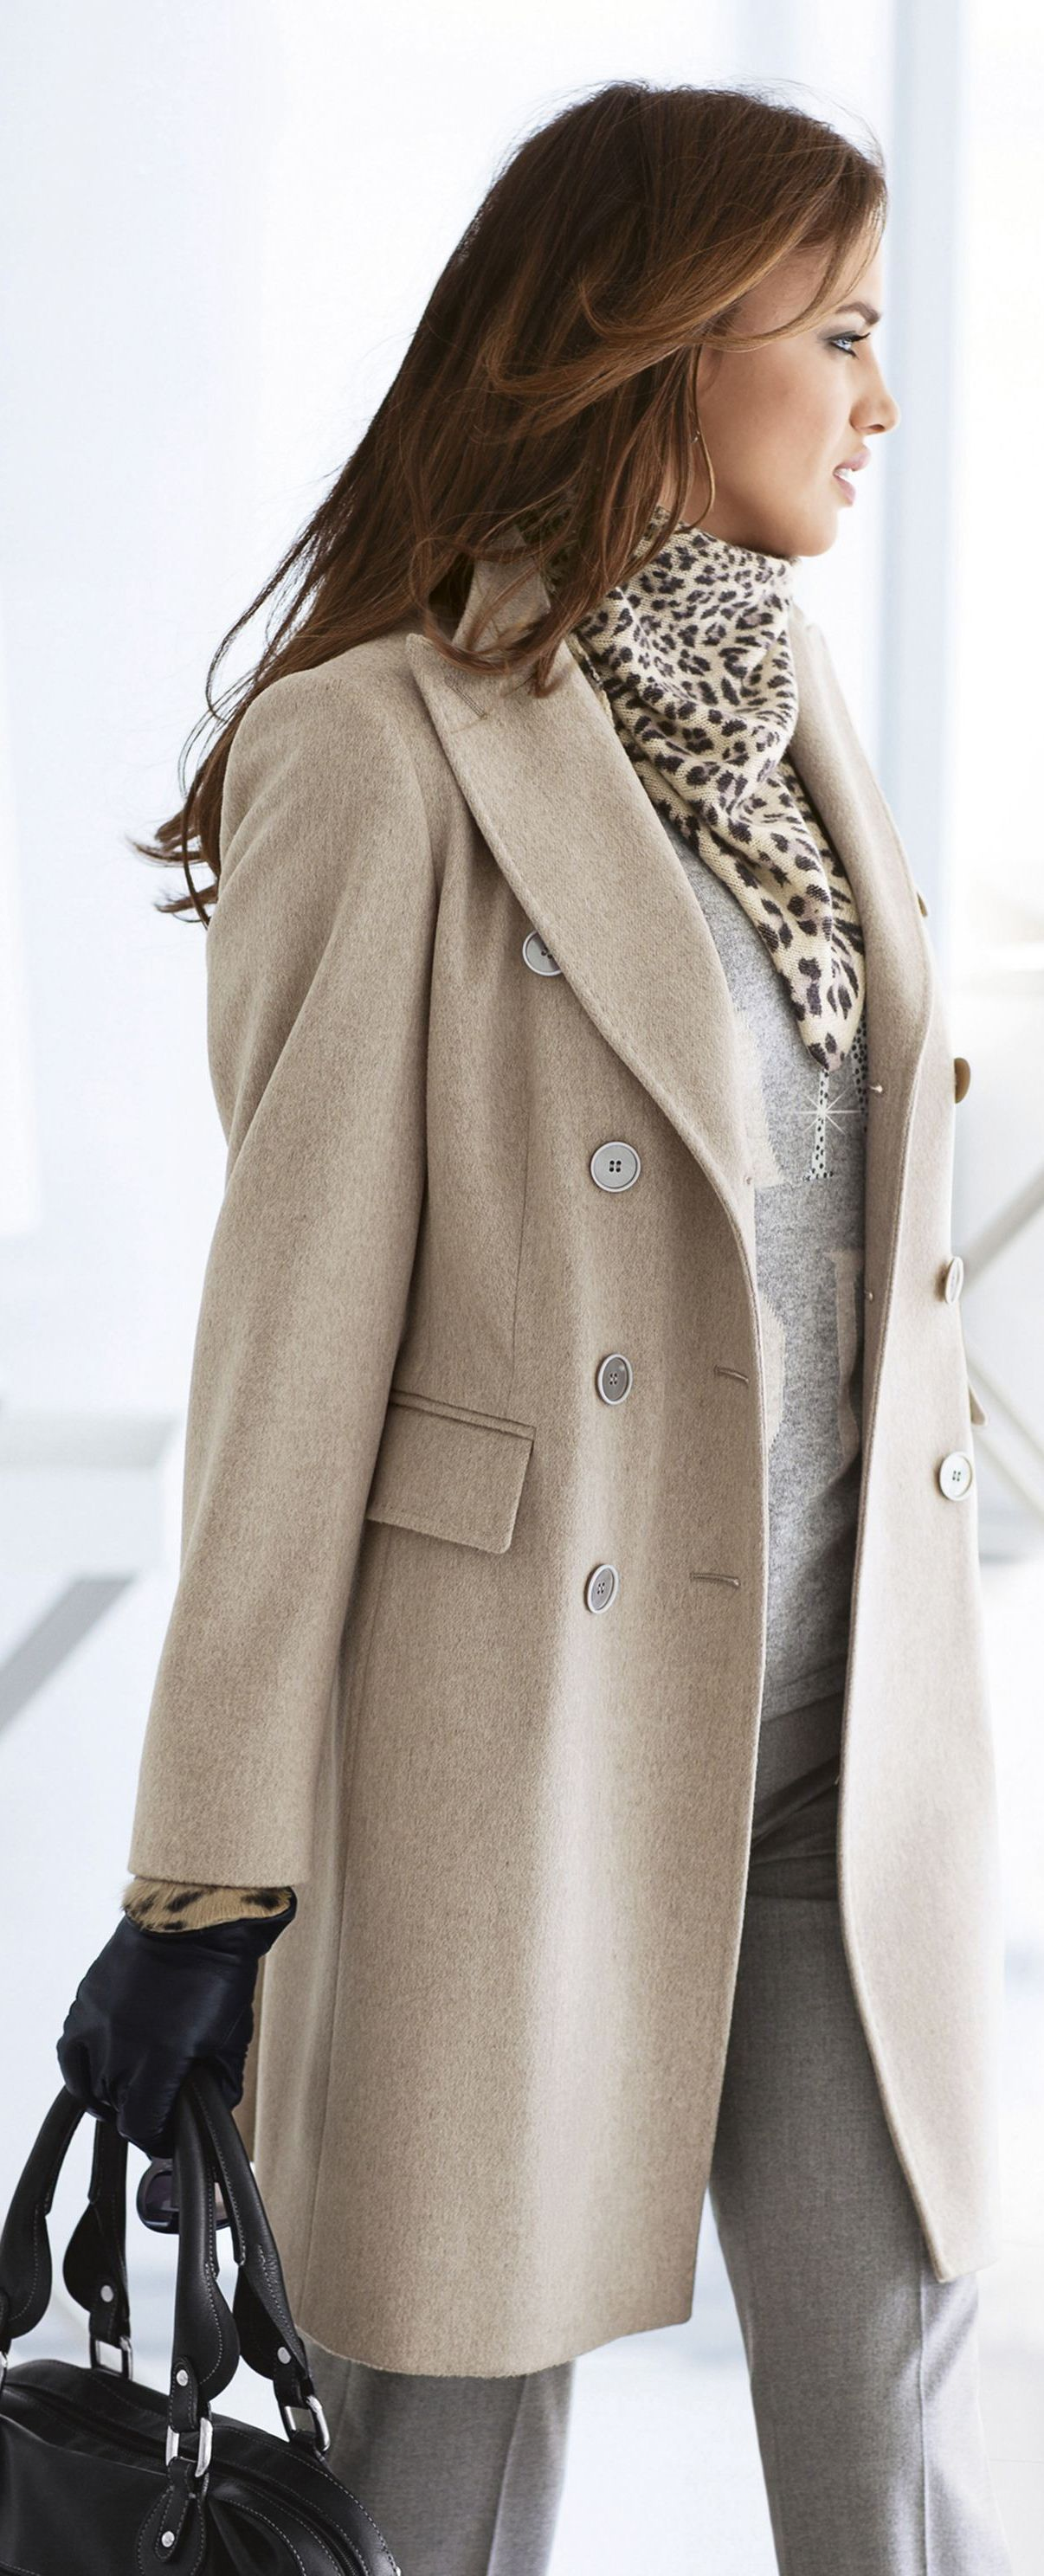 Classic coat paired with animal print scarf | When I grow